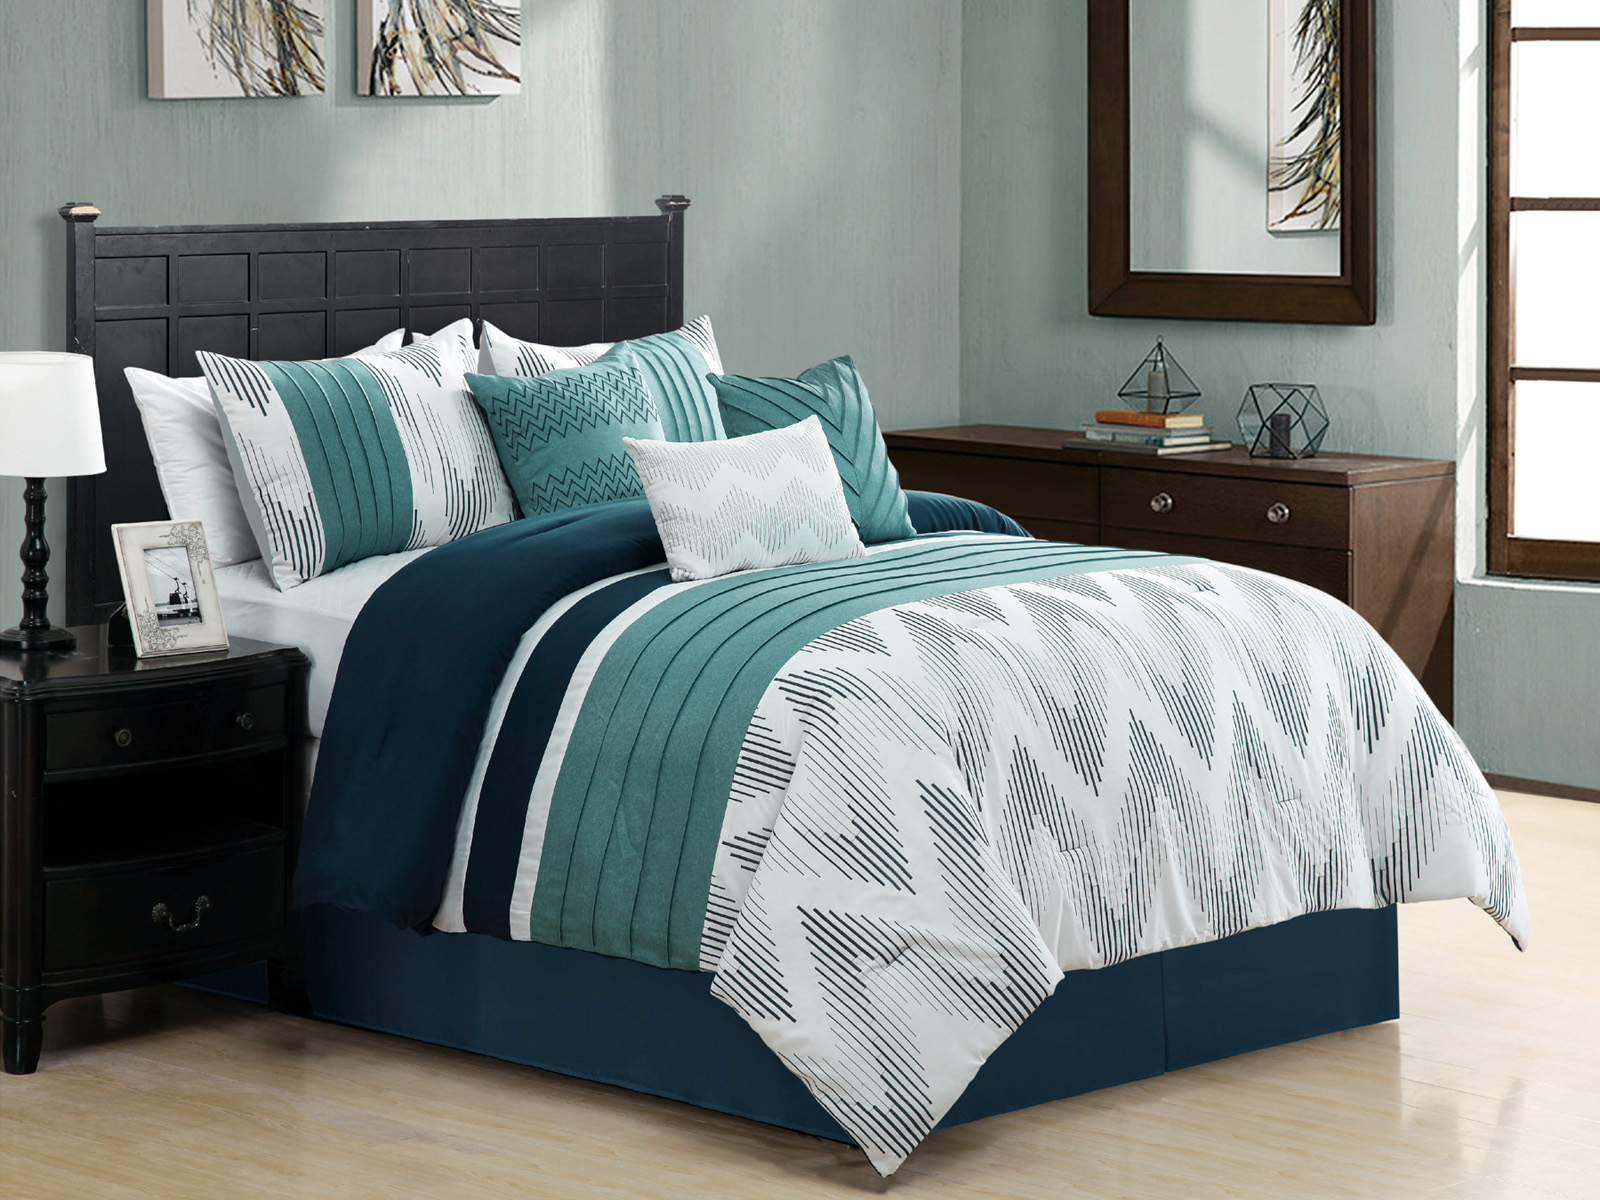 7 Striated Embroidery Chevron Zigzag Comforter Set Cal King Navy Blue Teal Green 642709903666 Ebay